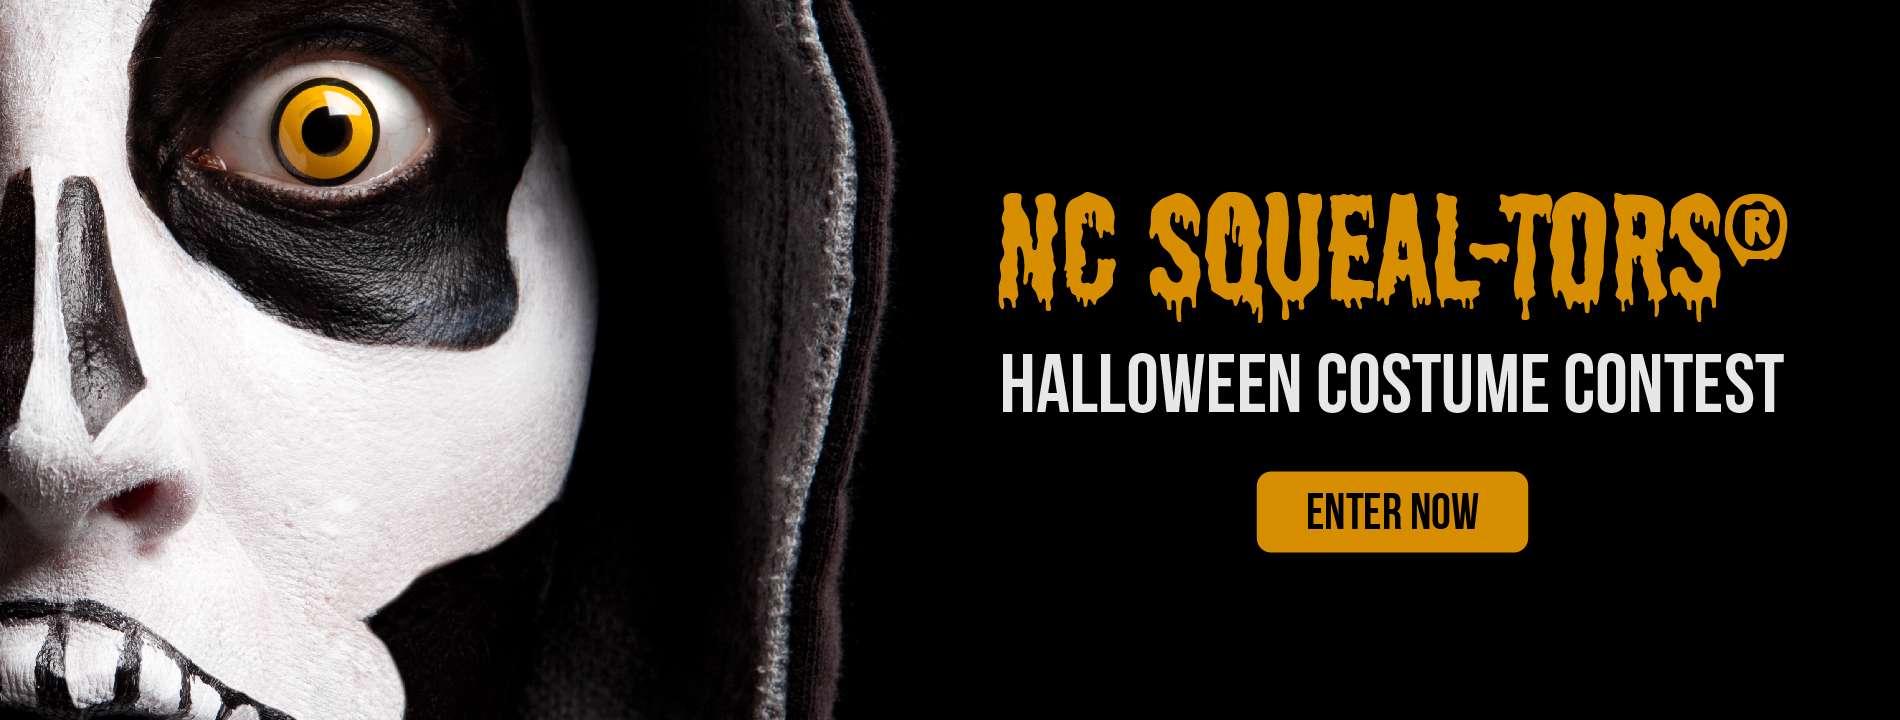 NC Squeal-TORS® Halloween Costume Contest